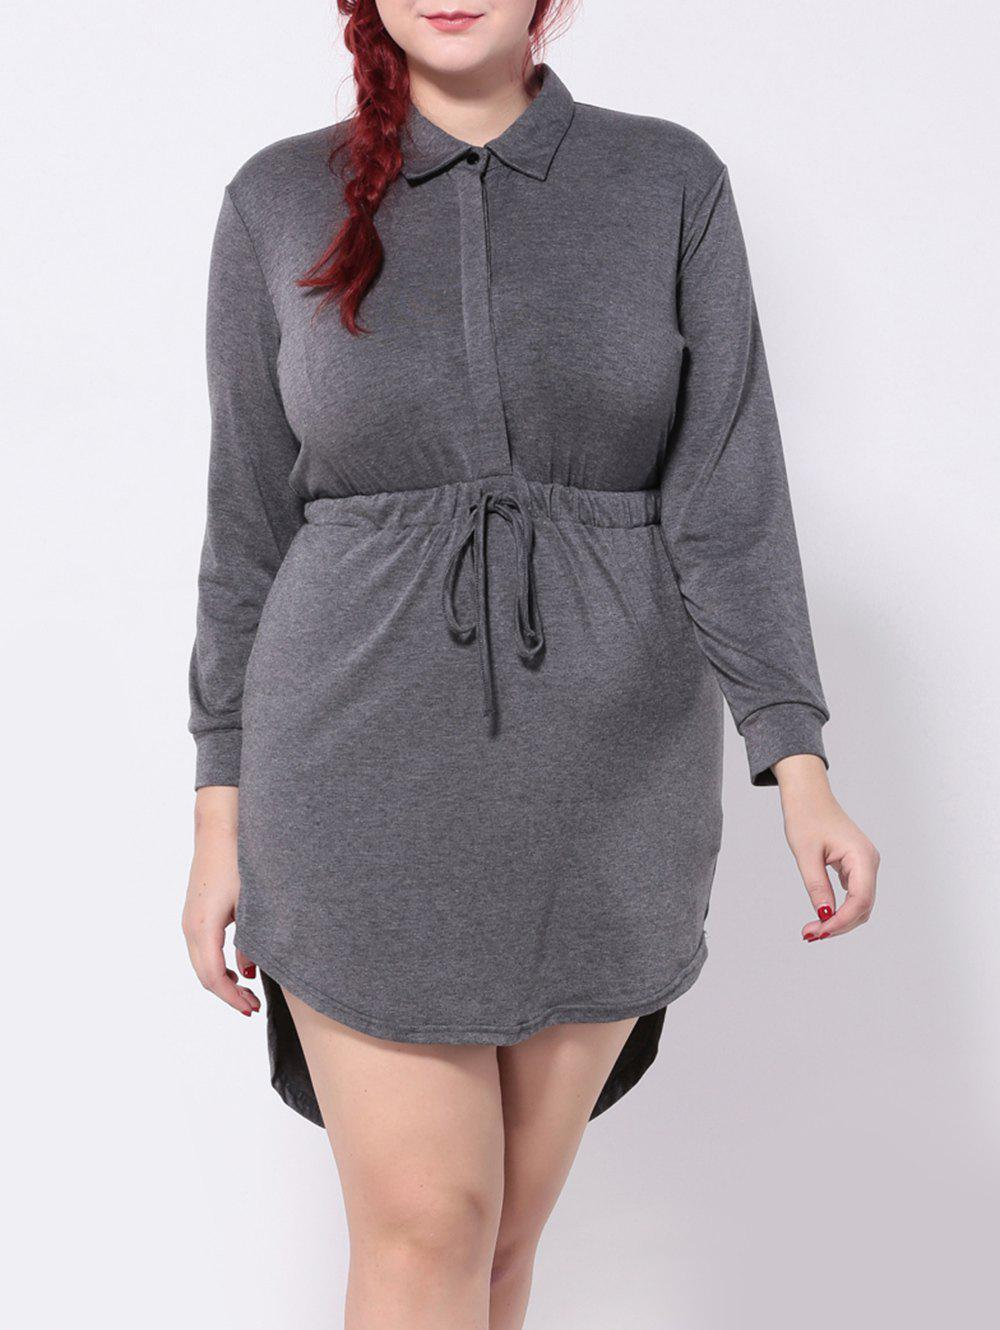 Long Sleeve Drawstring Asymmetric Dress - DEEP GRAY 5XL